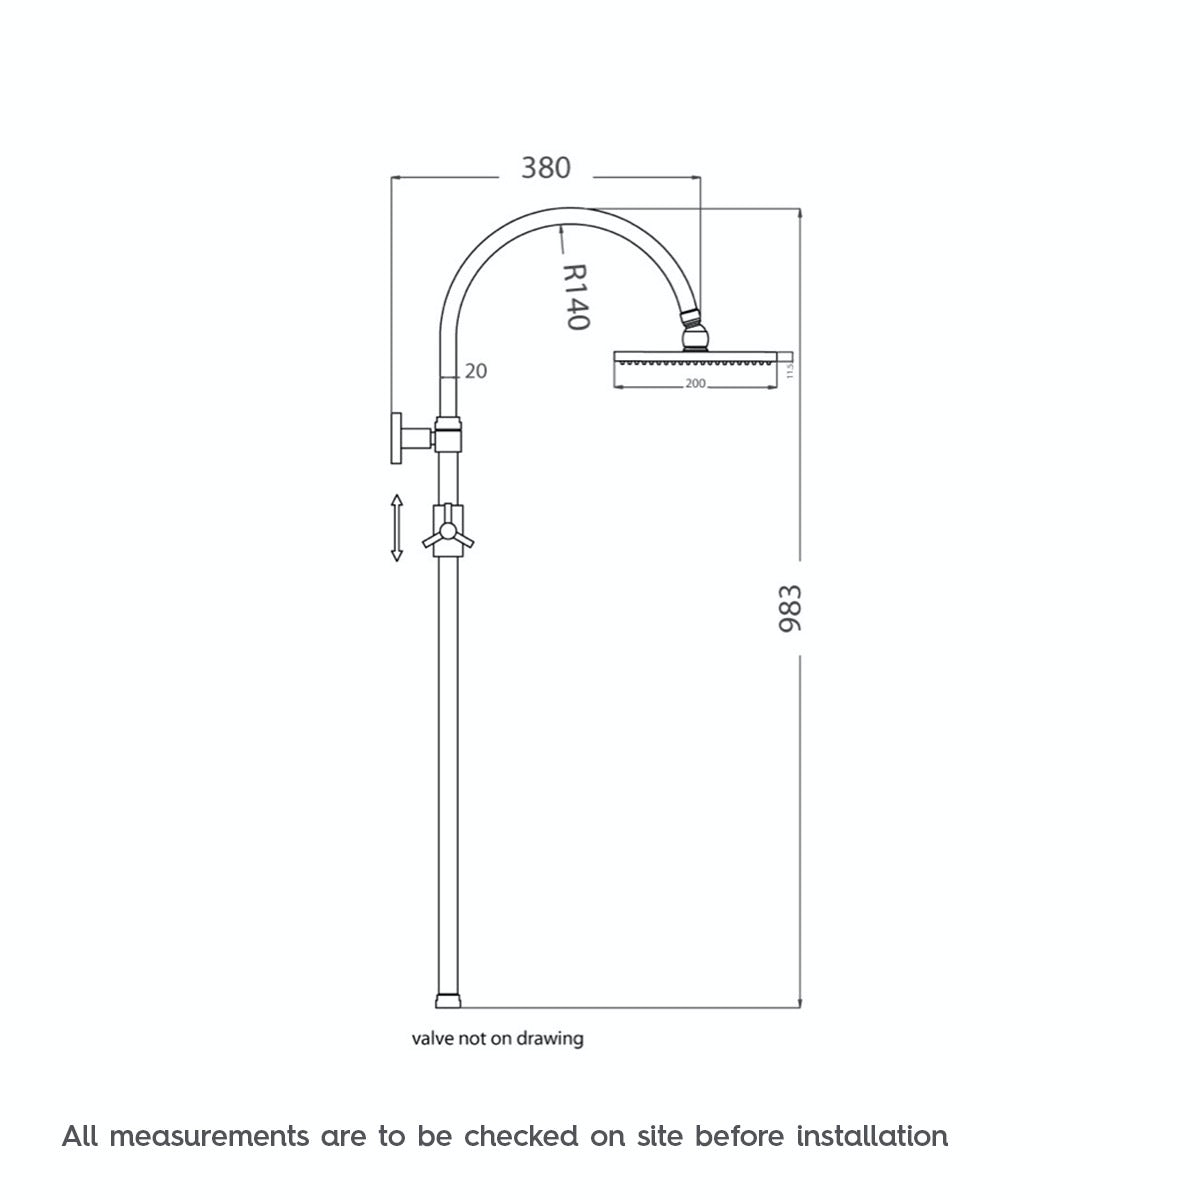 Dimensions for Aria round shower riser system